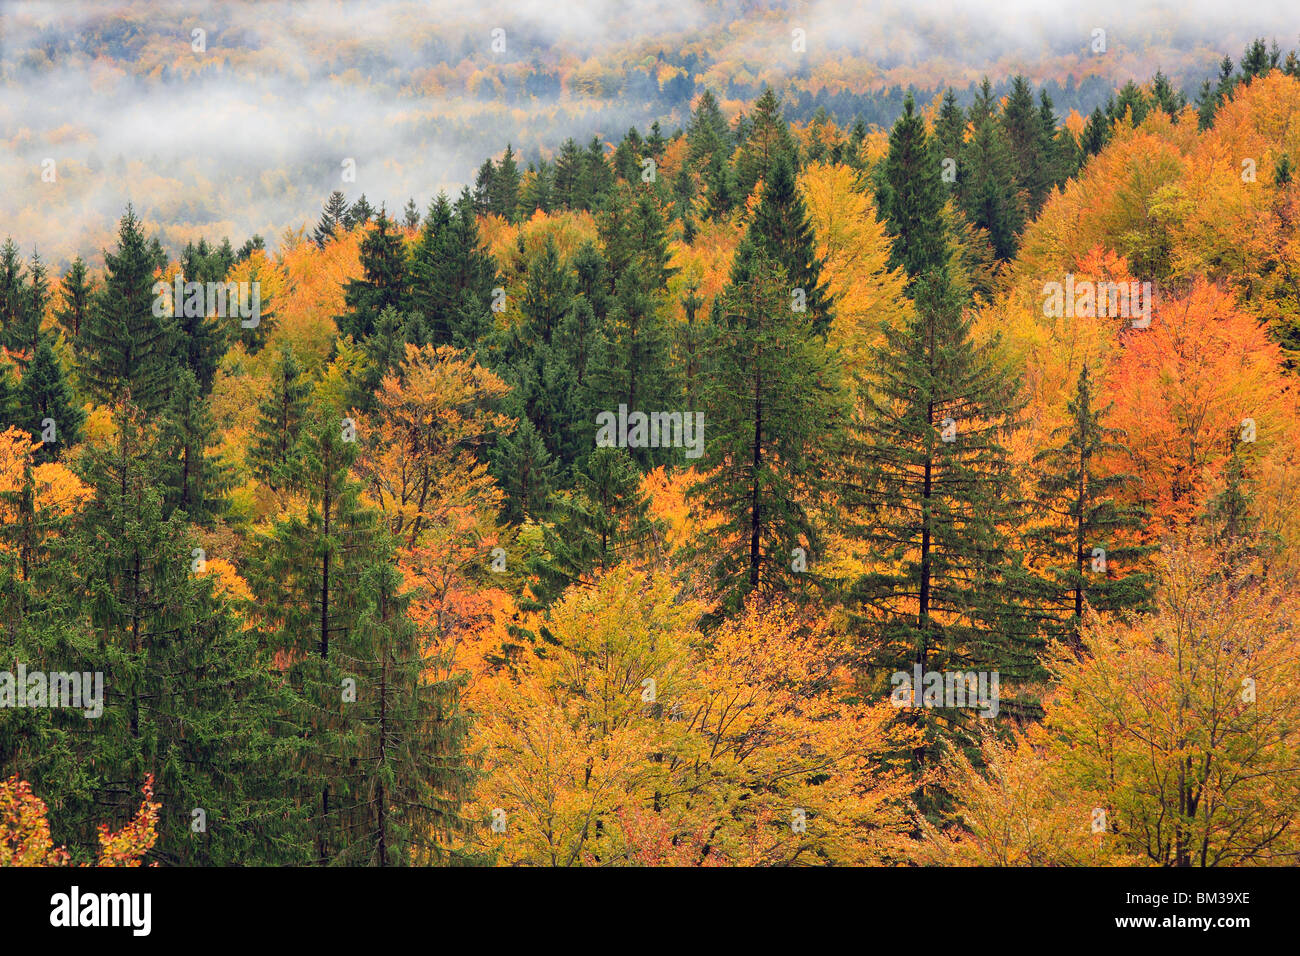 Autumn mists over the Bohinj Valley near Ribcev Laz, Gorenjska, Slovenia - Stock Image